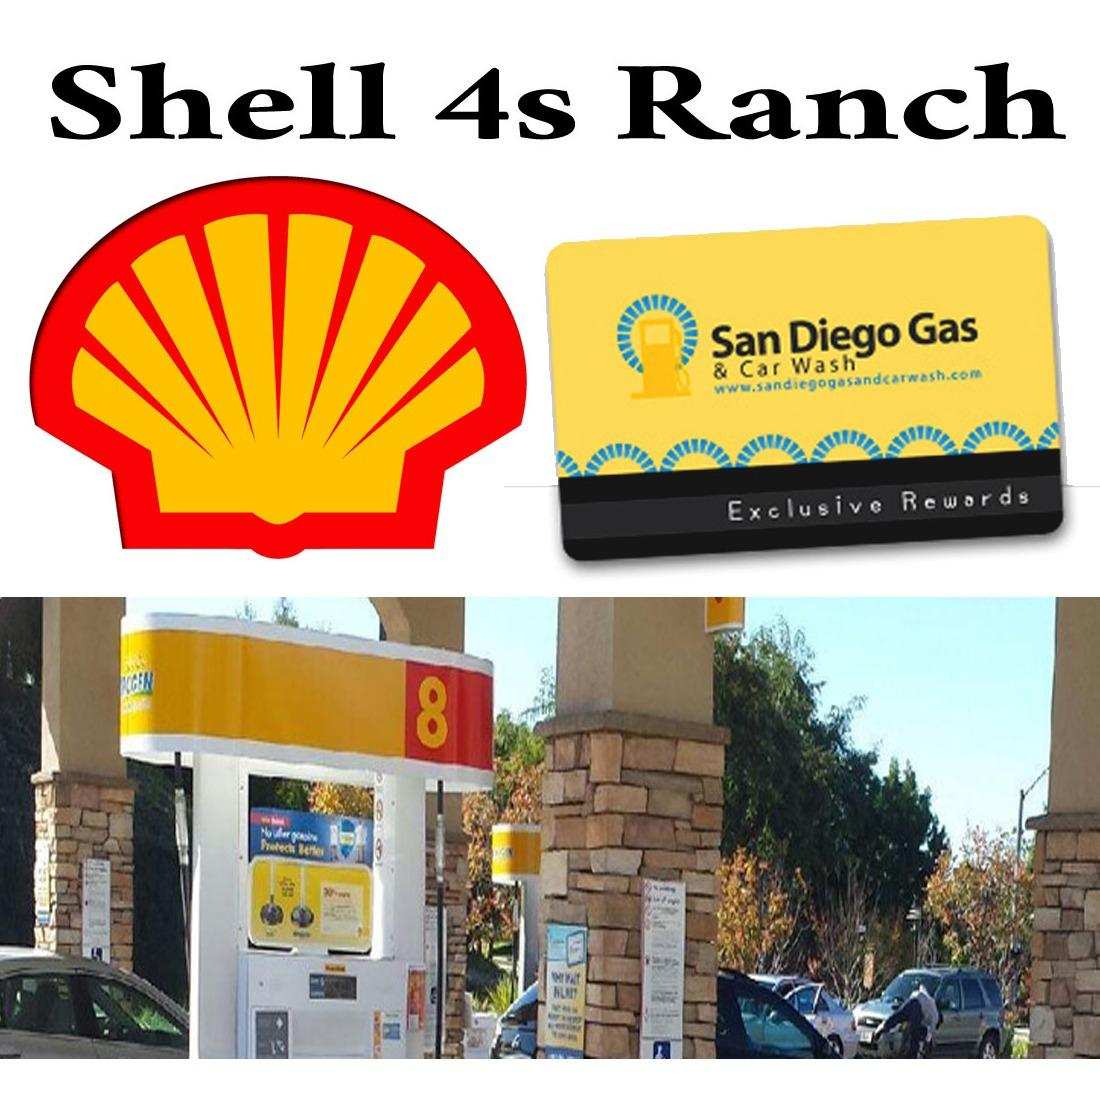 Carmel Valley Shell